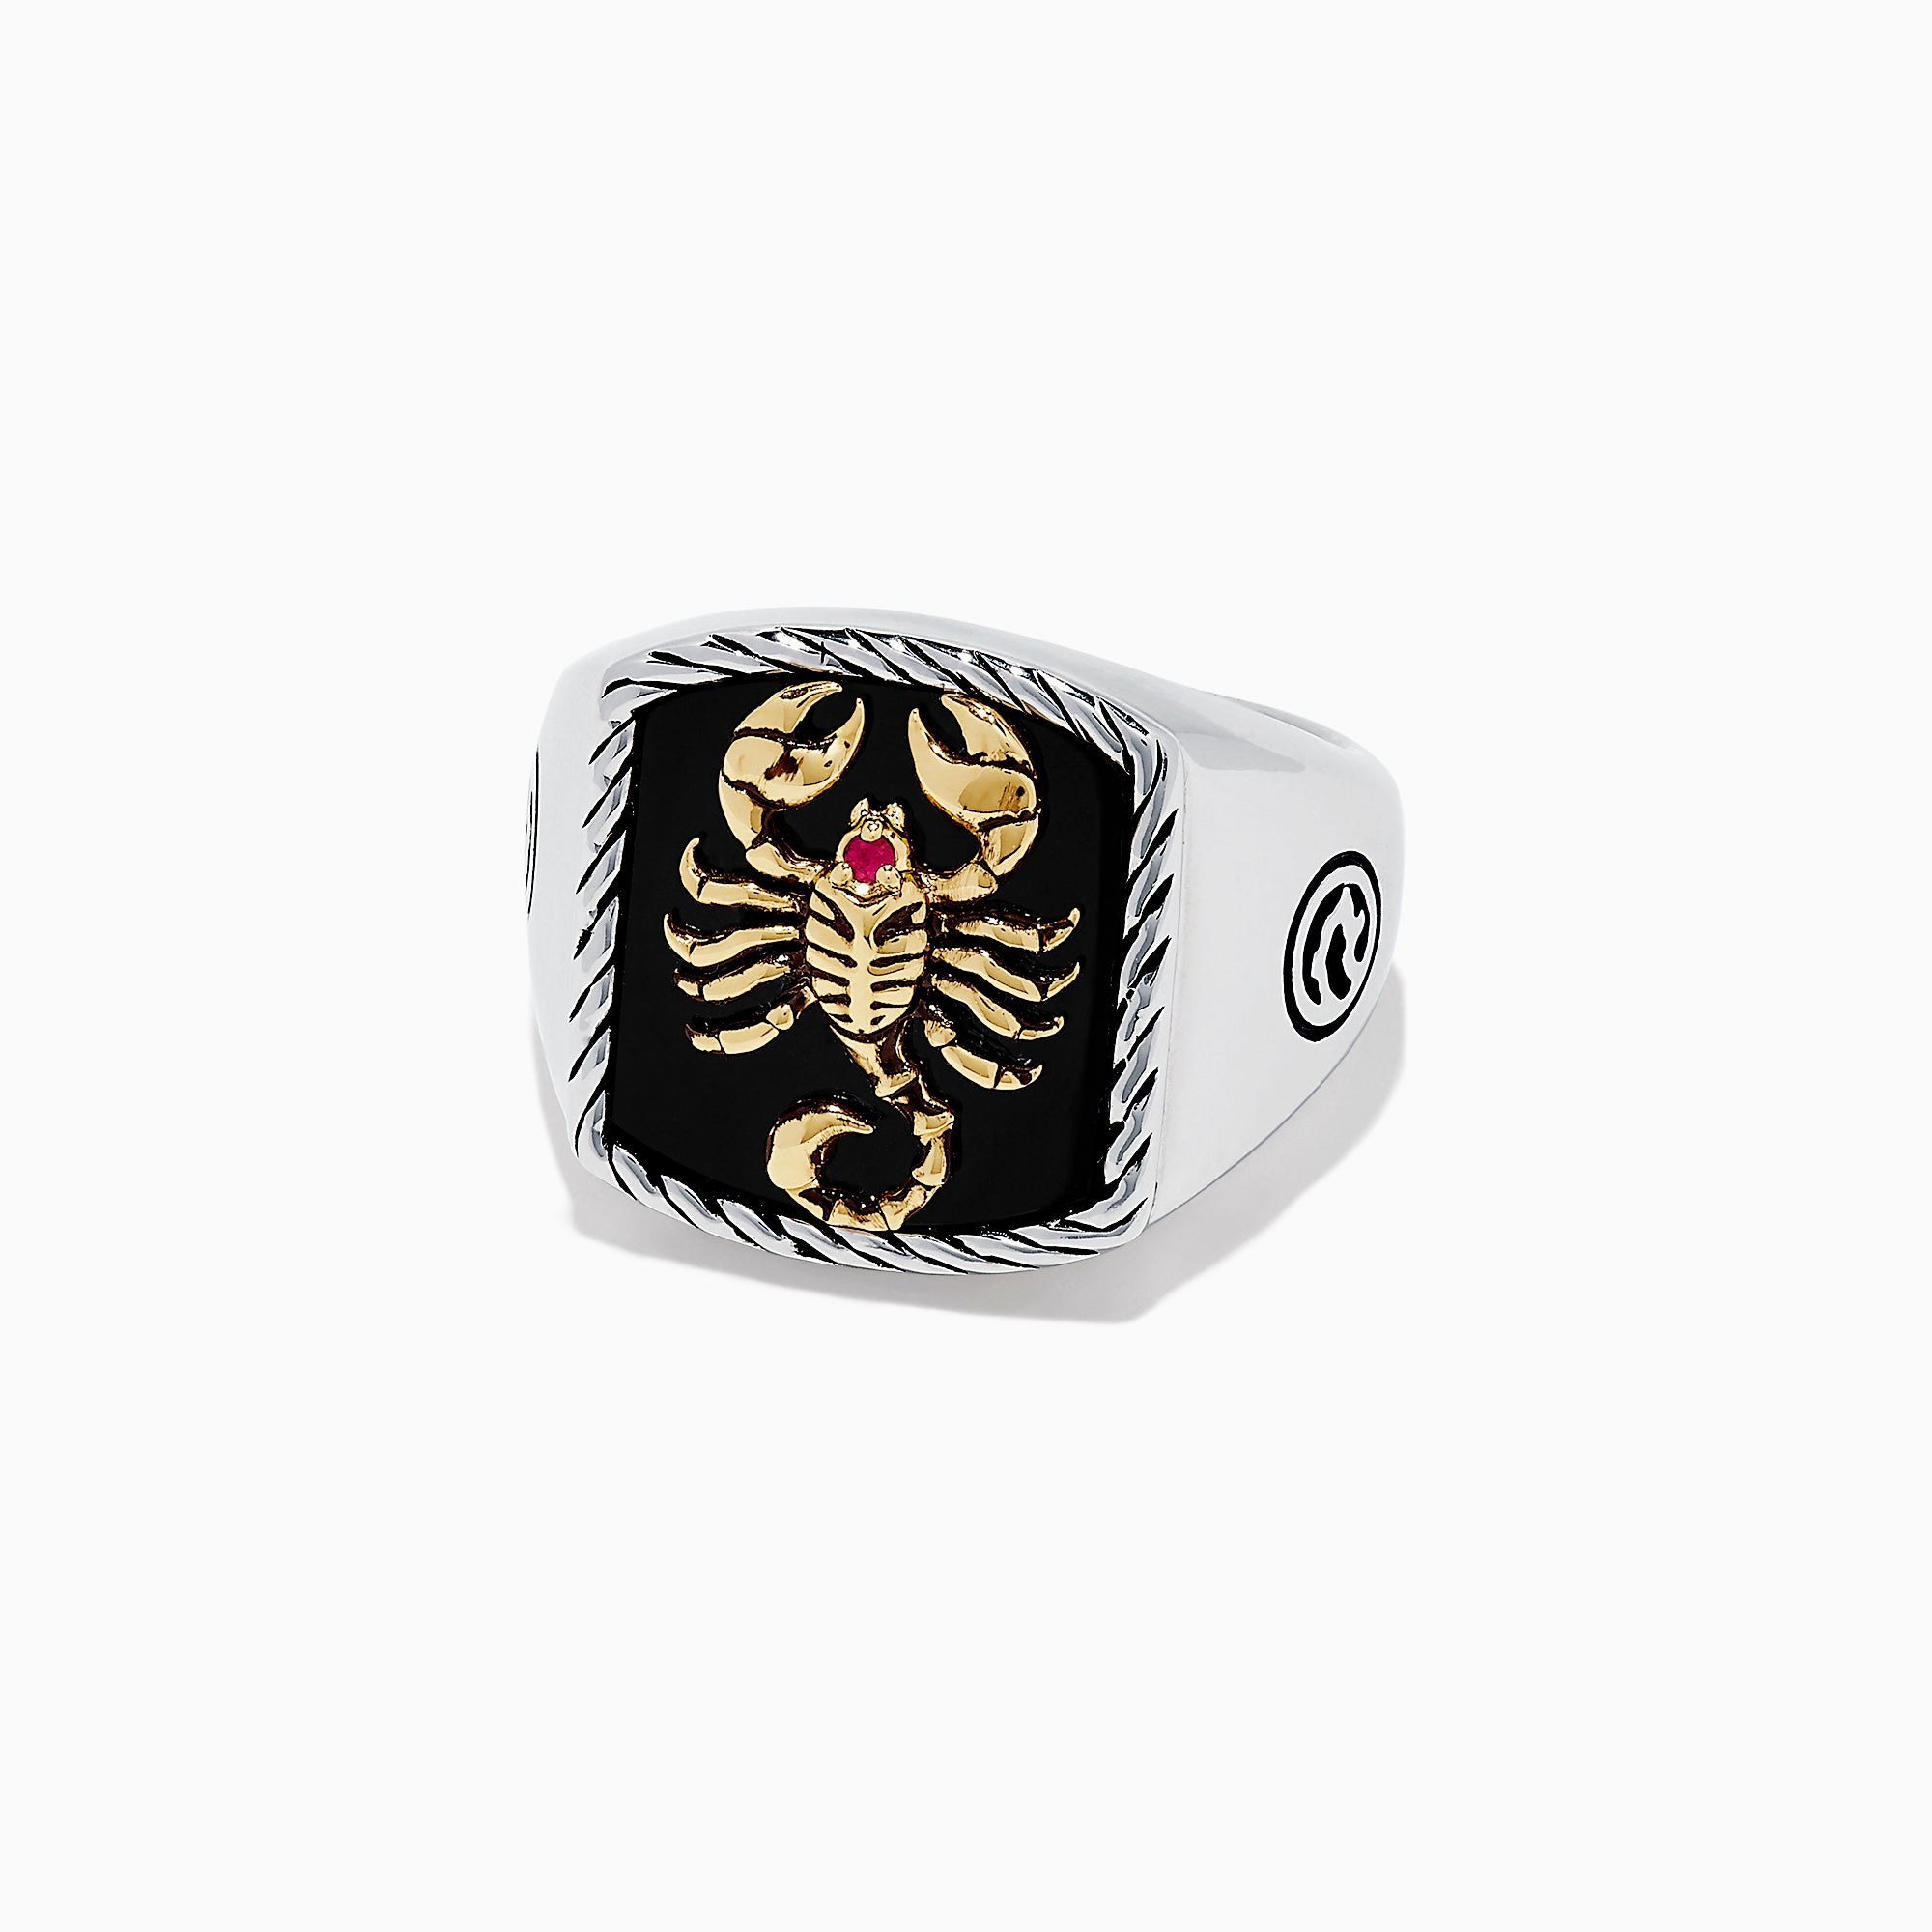 Effy Men's Silver & 14K Gold Plating Onyx and Ruby Scorpion Ring, 5.00 TCW